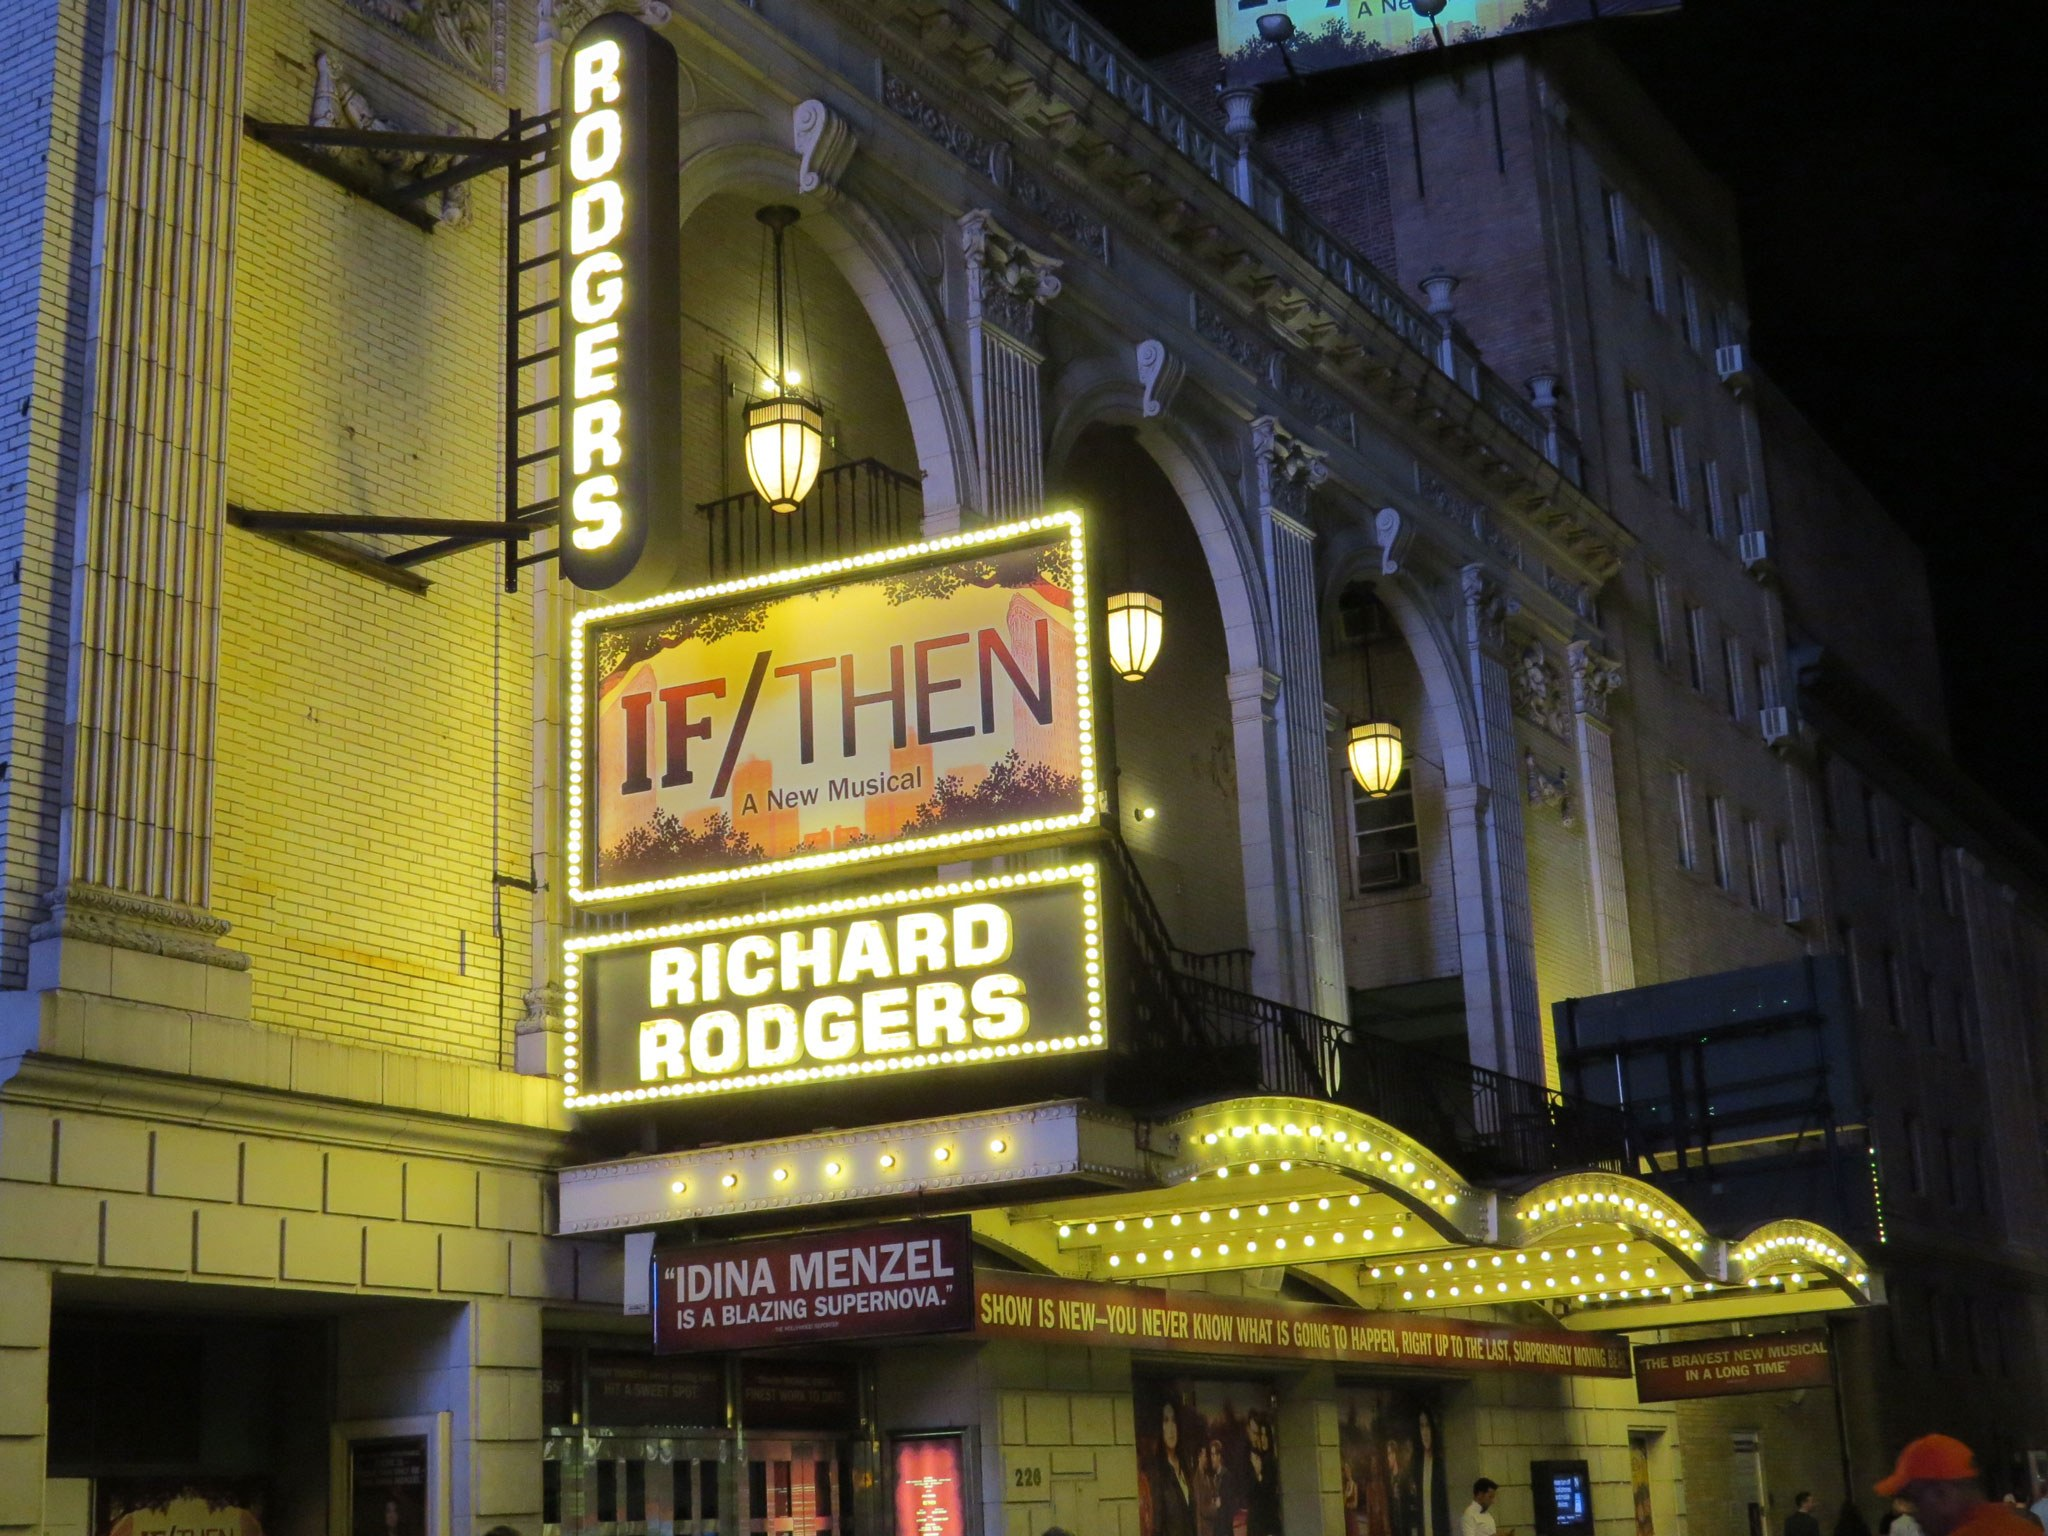 If Then Broadway Theatre Marquee